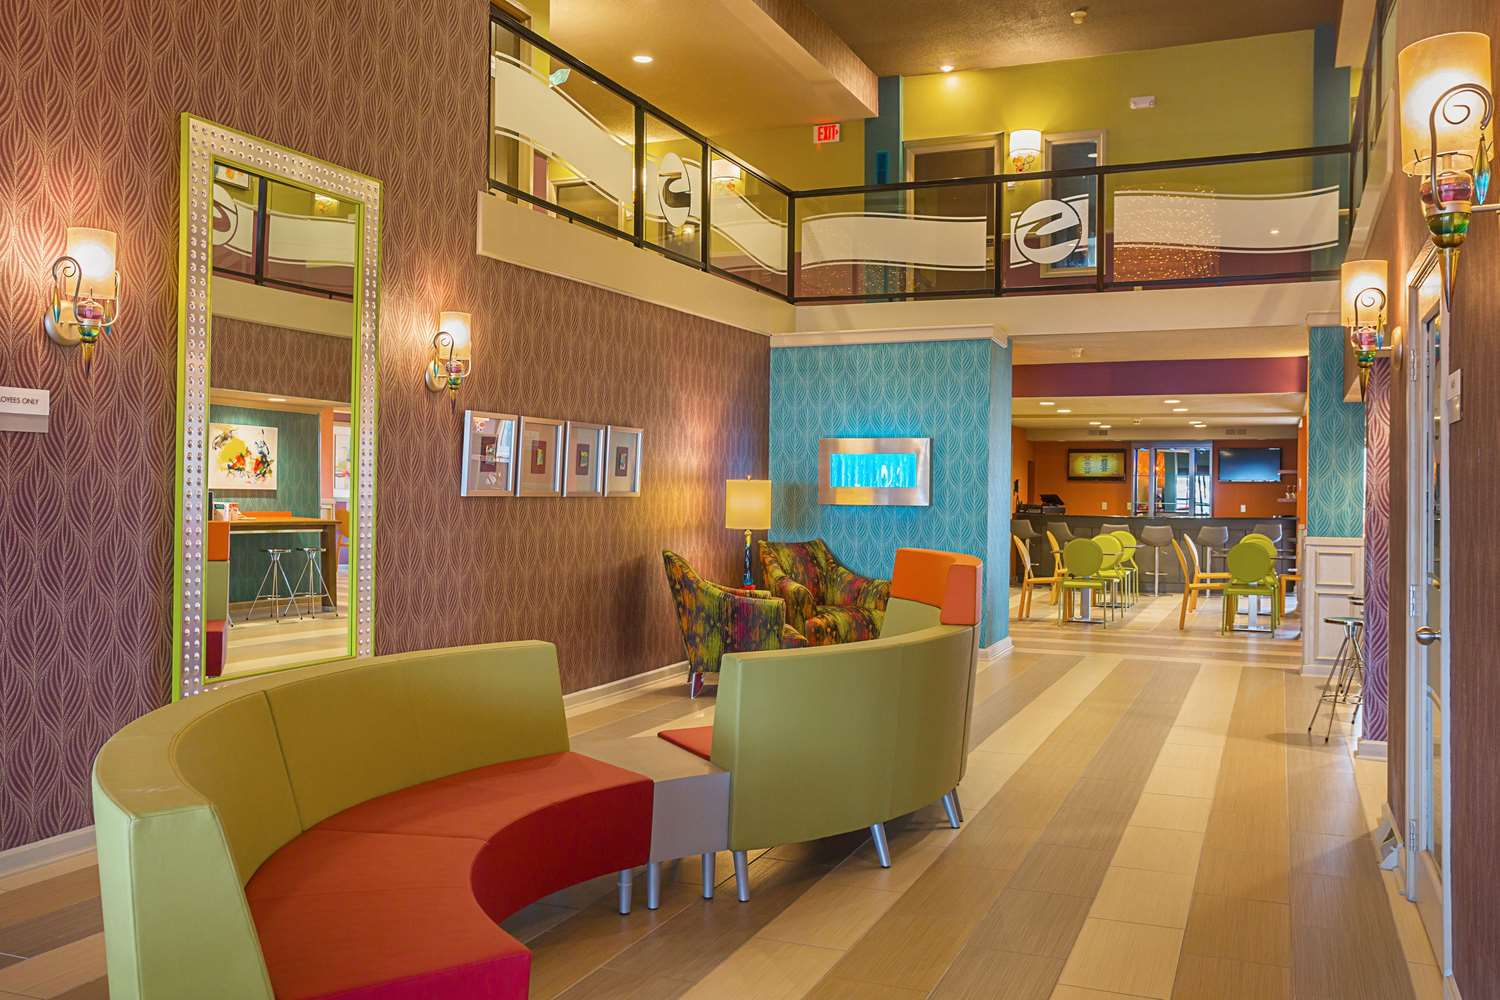 Clarion Inn & Suites Evansville, IN - See Discounts